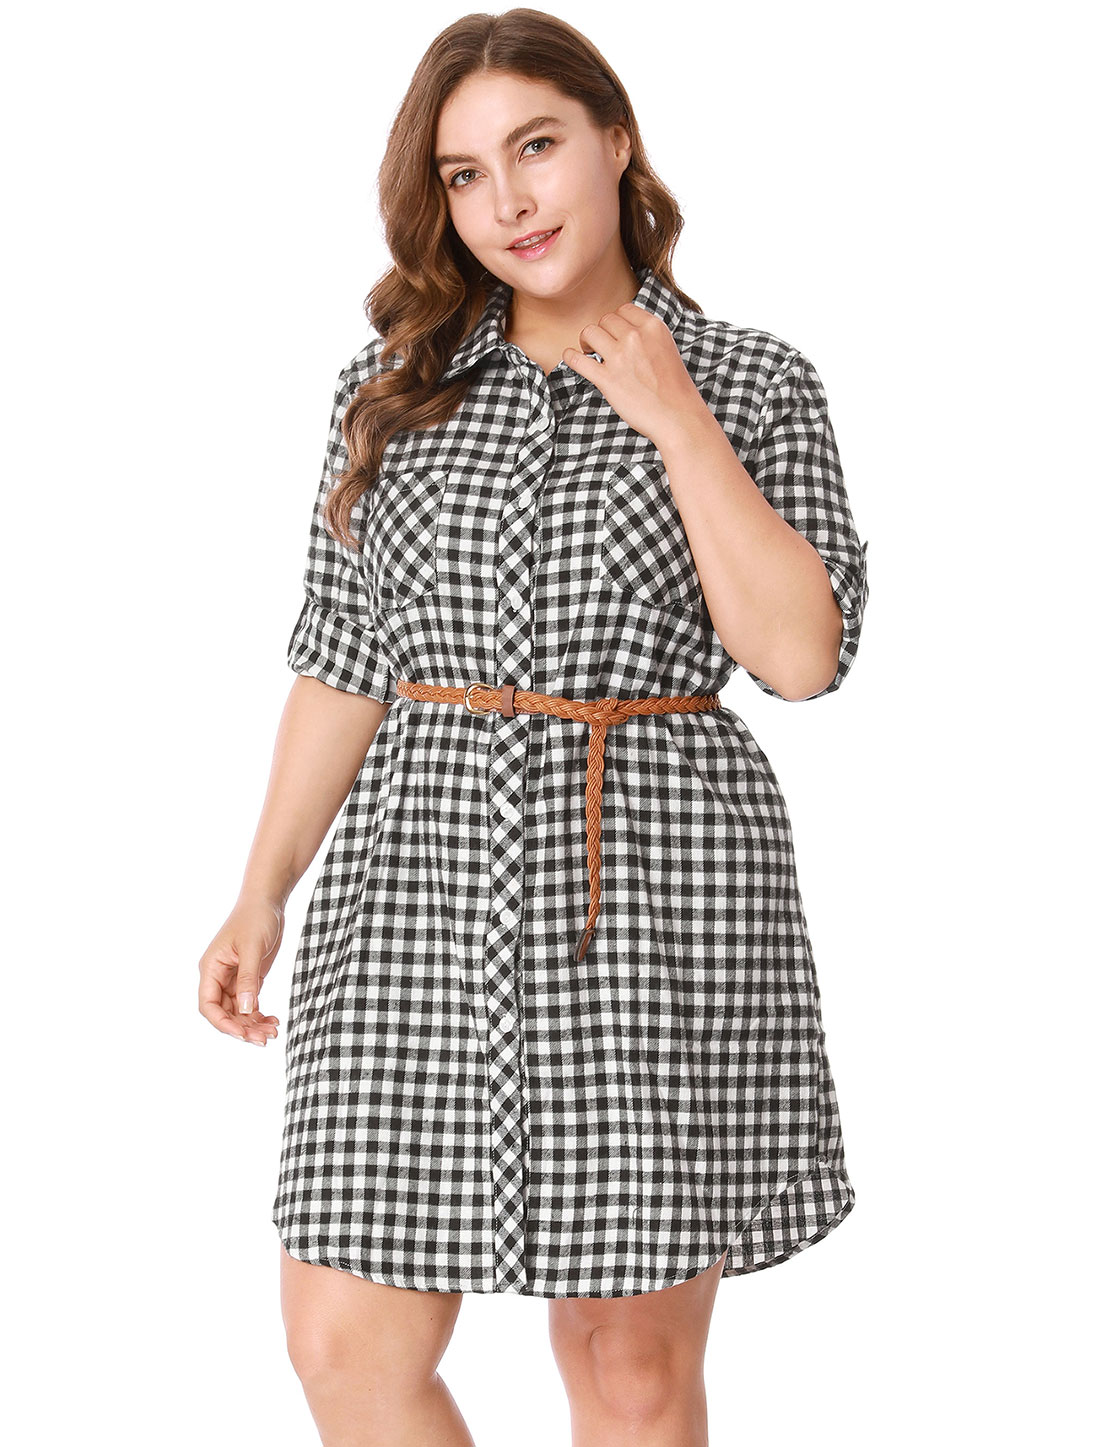 Women Plus Size Roll Up Sleeves Belted Plaid Shirt Dress Black White 1X